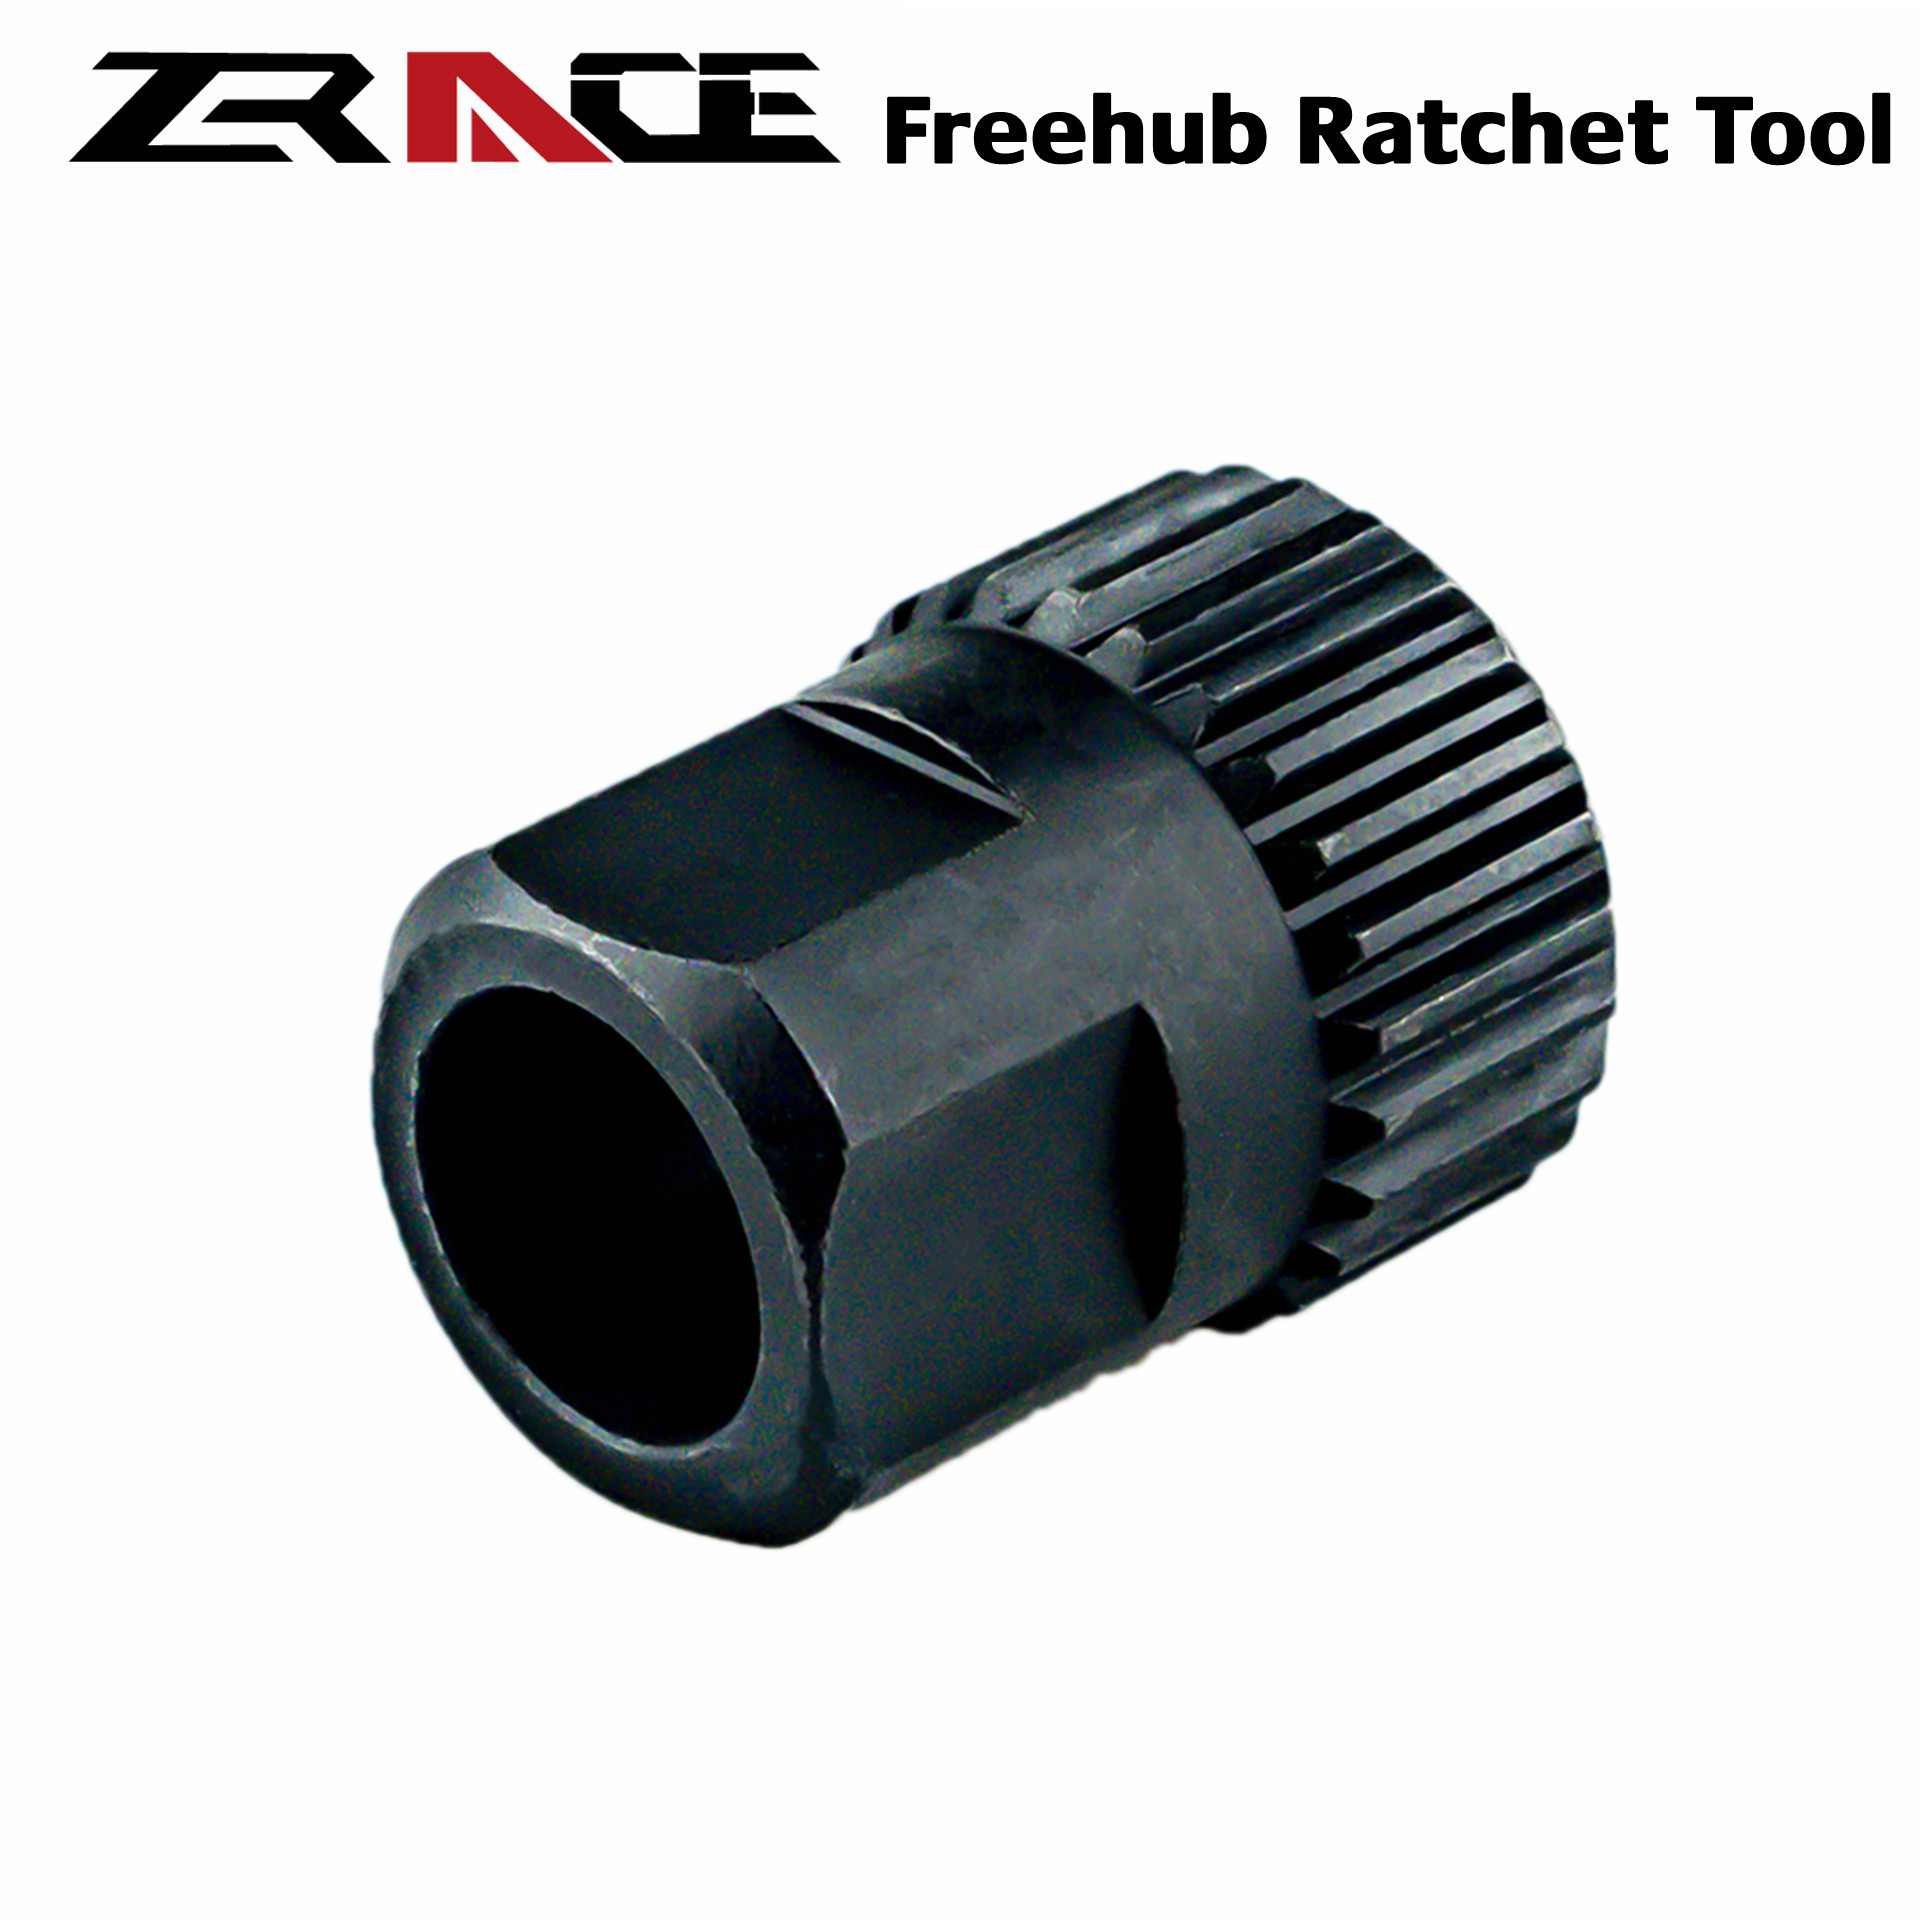 ZRACE Bicycle Freehub Ratchet Tool for DT SWISS HUB, for DT full range of HUB and DT similar structure HUB Tools , KOOZER 470